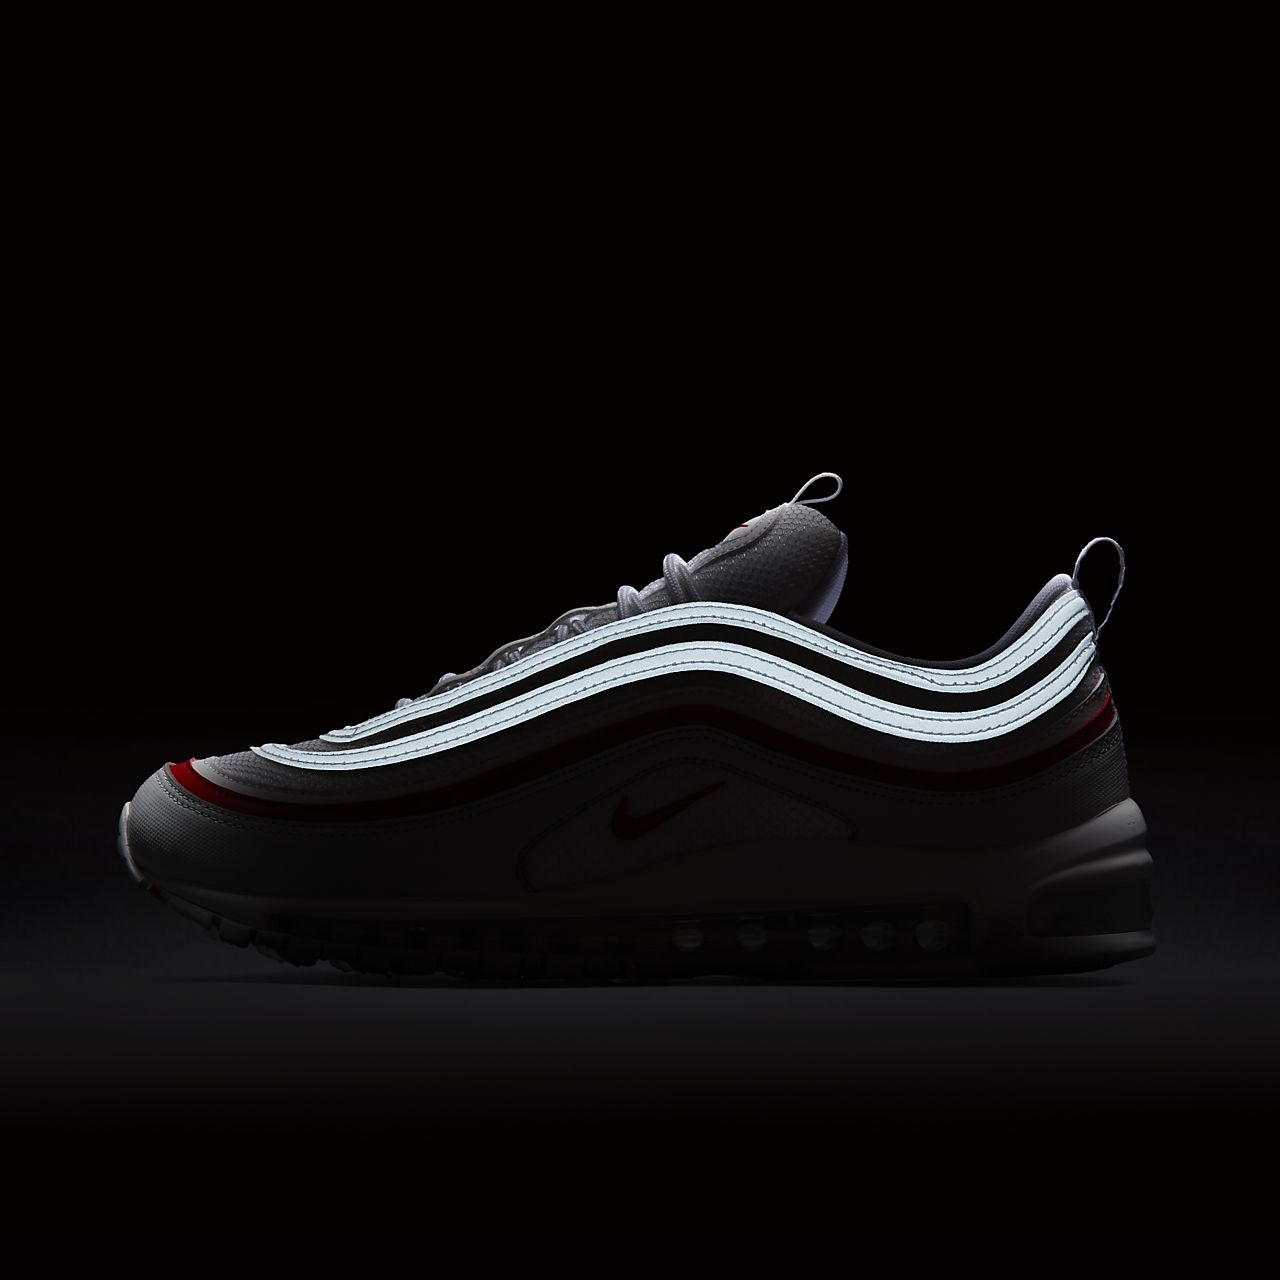 636d32de46 shop scarpa nike air max 97 og pure platinum university red bianco ar5531  002 3589a 62a1e